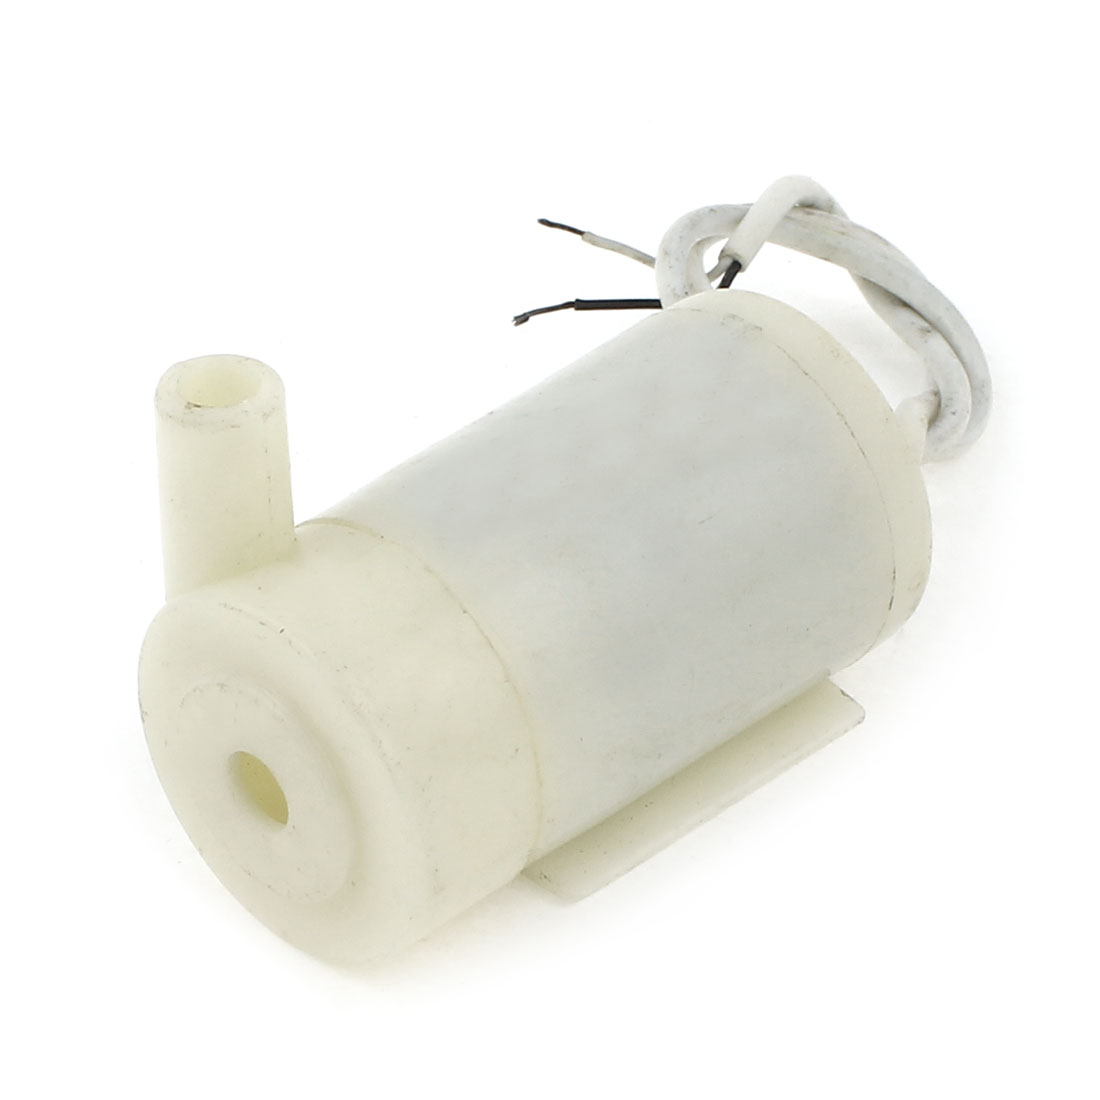 Beige Plastic Housing 7mm Outlet Dia Micro Pump Motor 400mA DC 3-12V